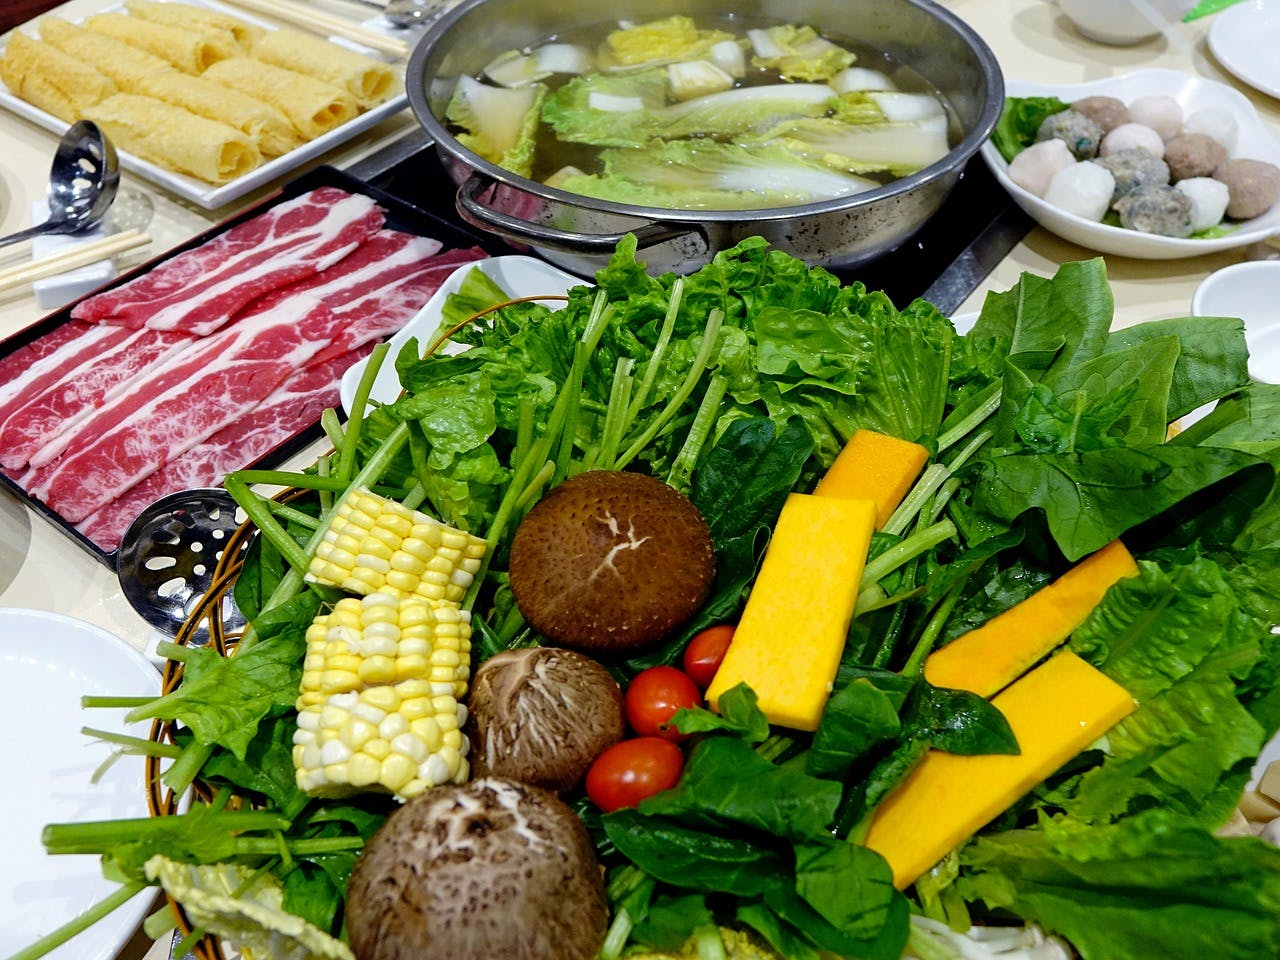 Assorted ingredients for a hot pot meal